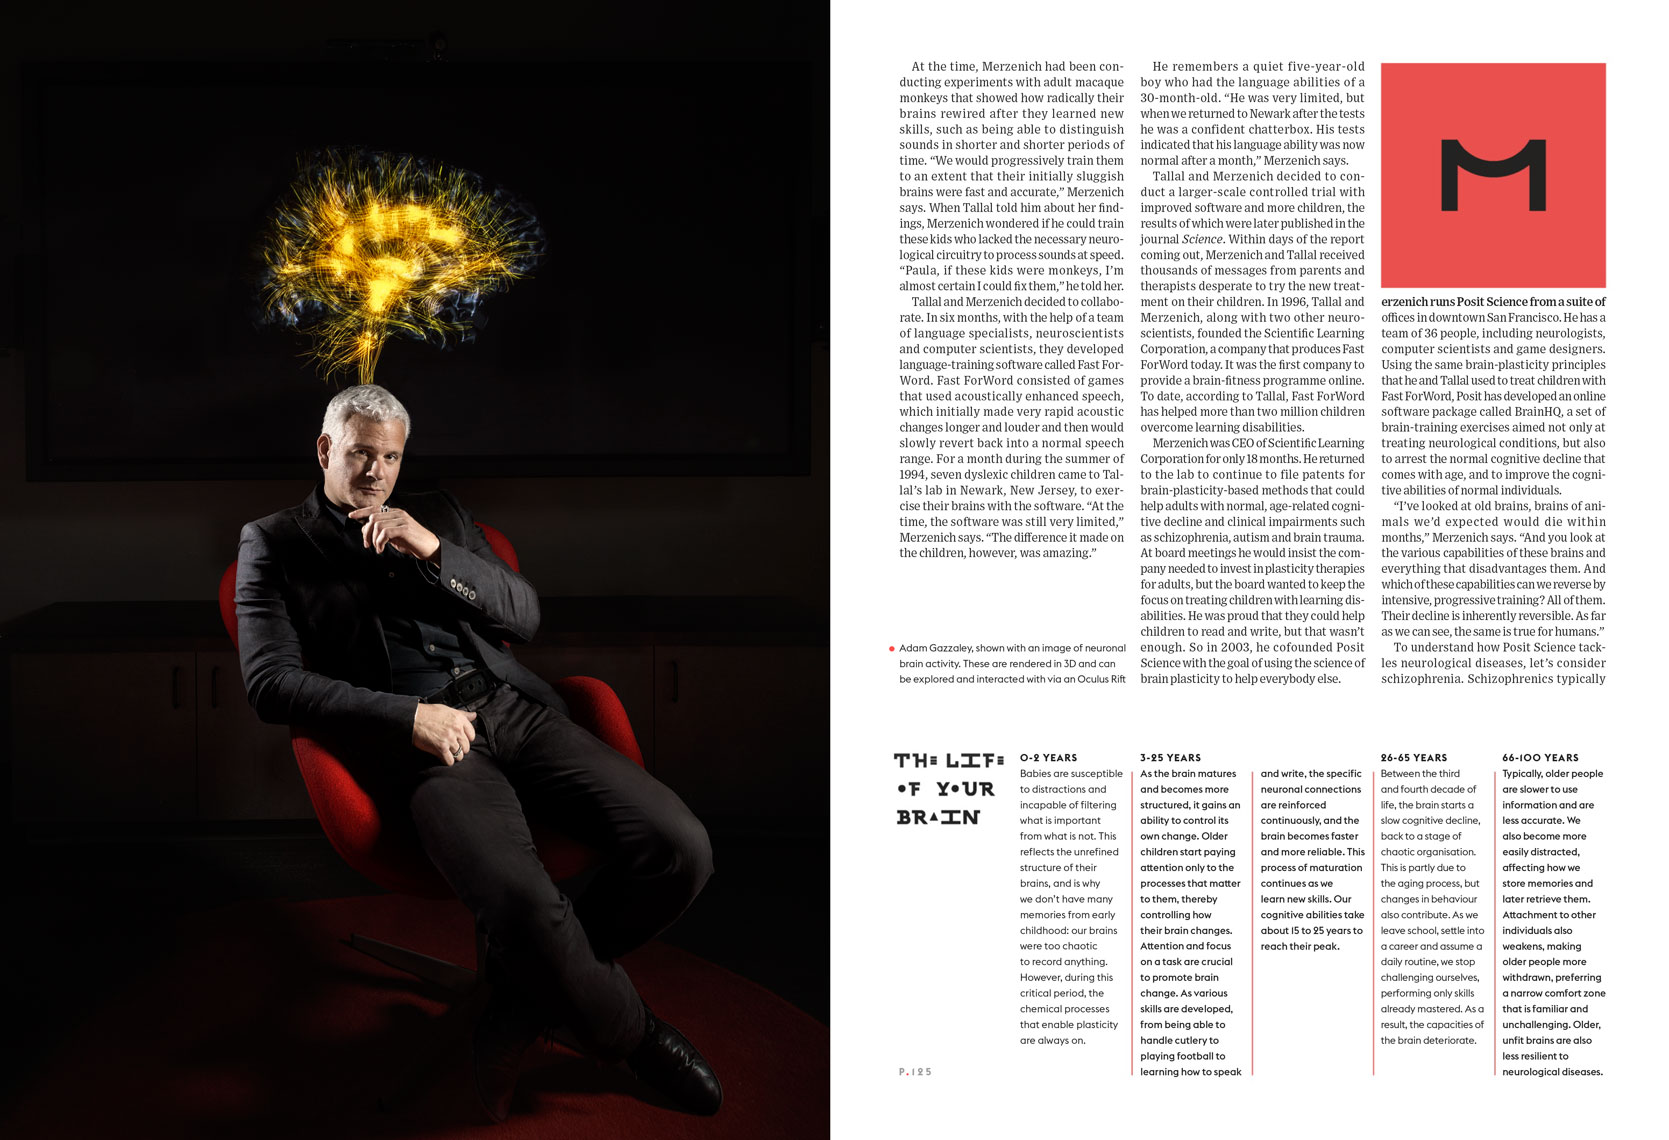 Adam Gazzaley for Wired UK Spread May 2014 issue